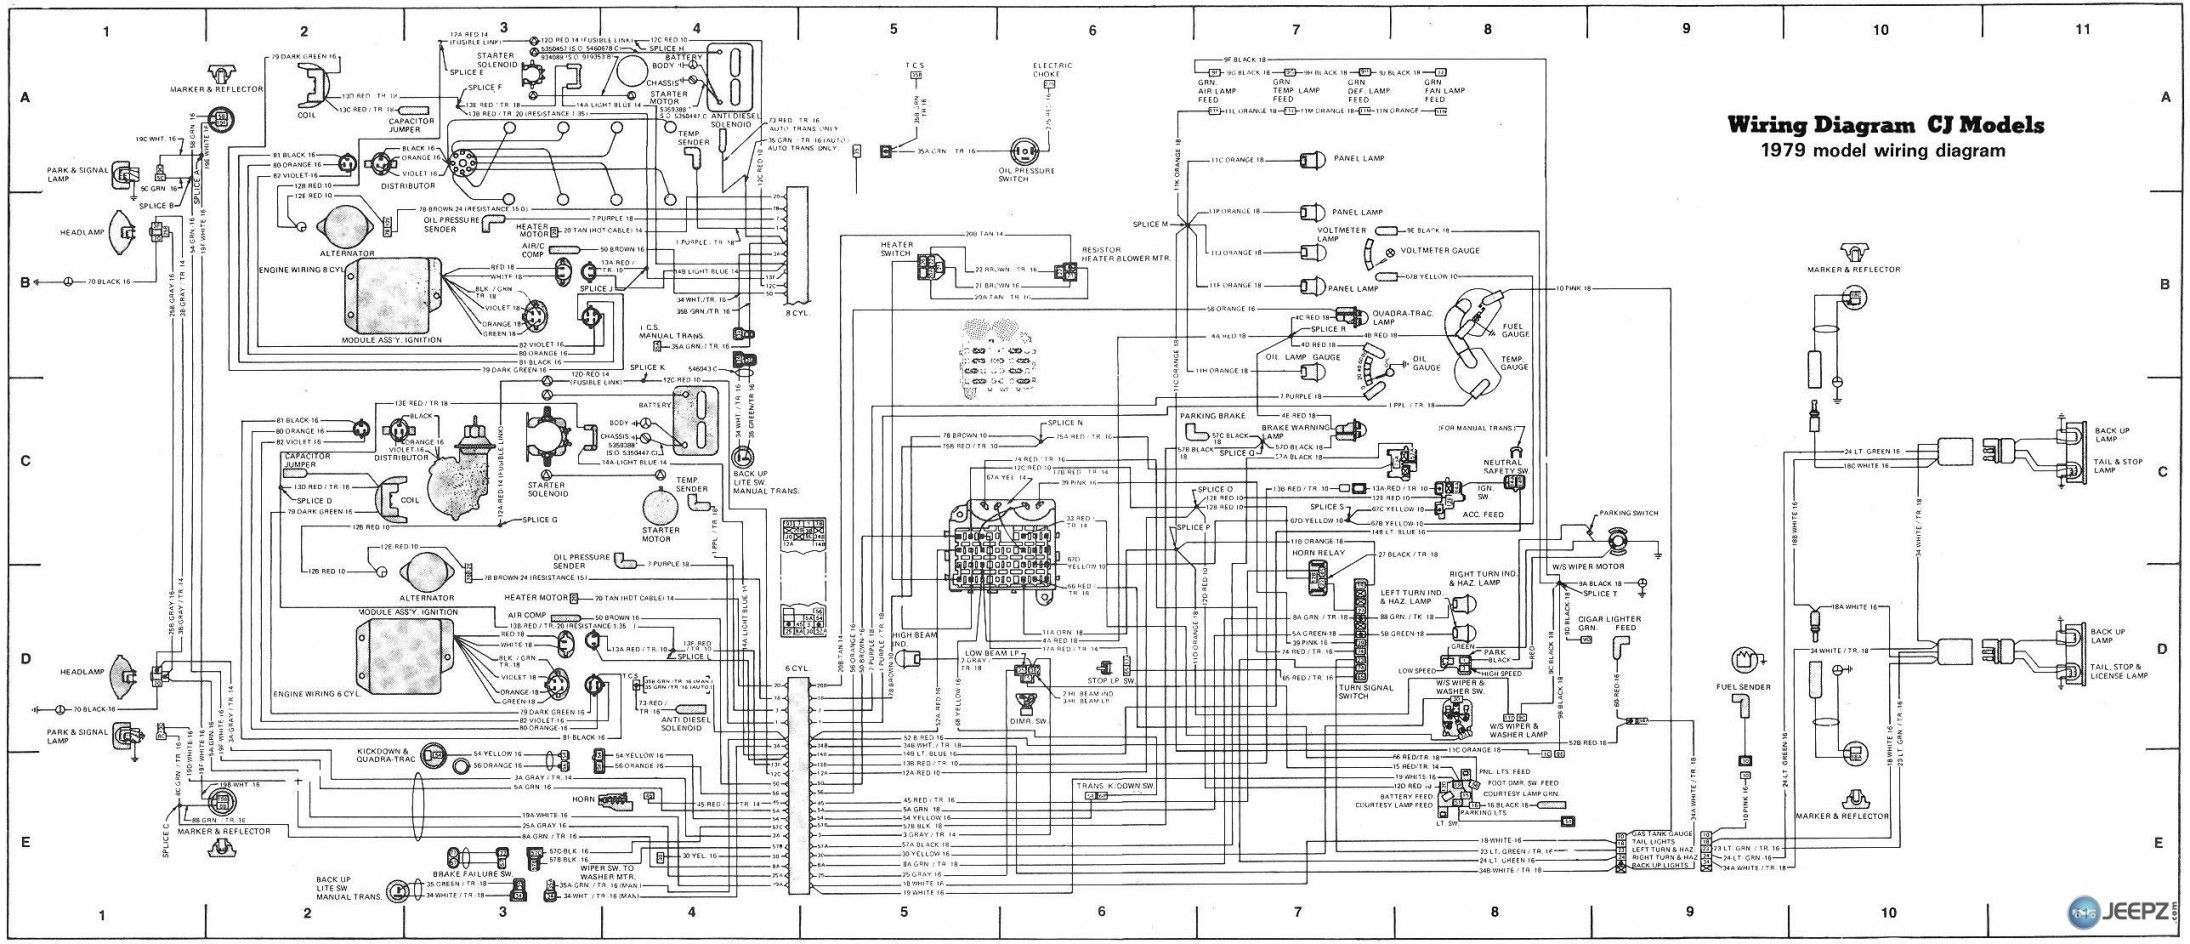 1979 v8 cj7 wiring diagram all kind of wiring diagrams u2022 rh viewdress com